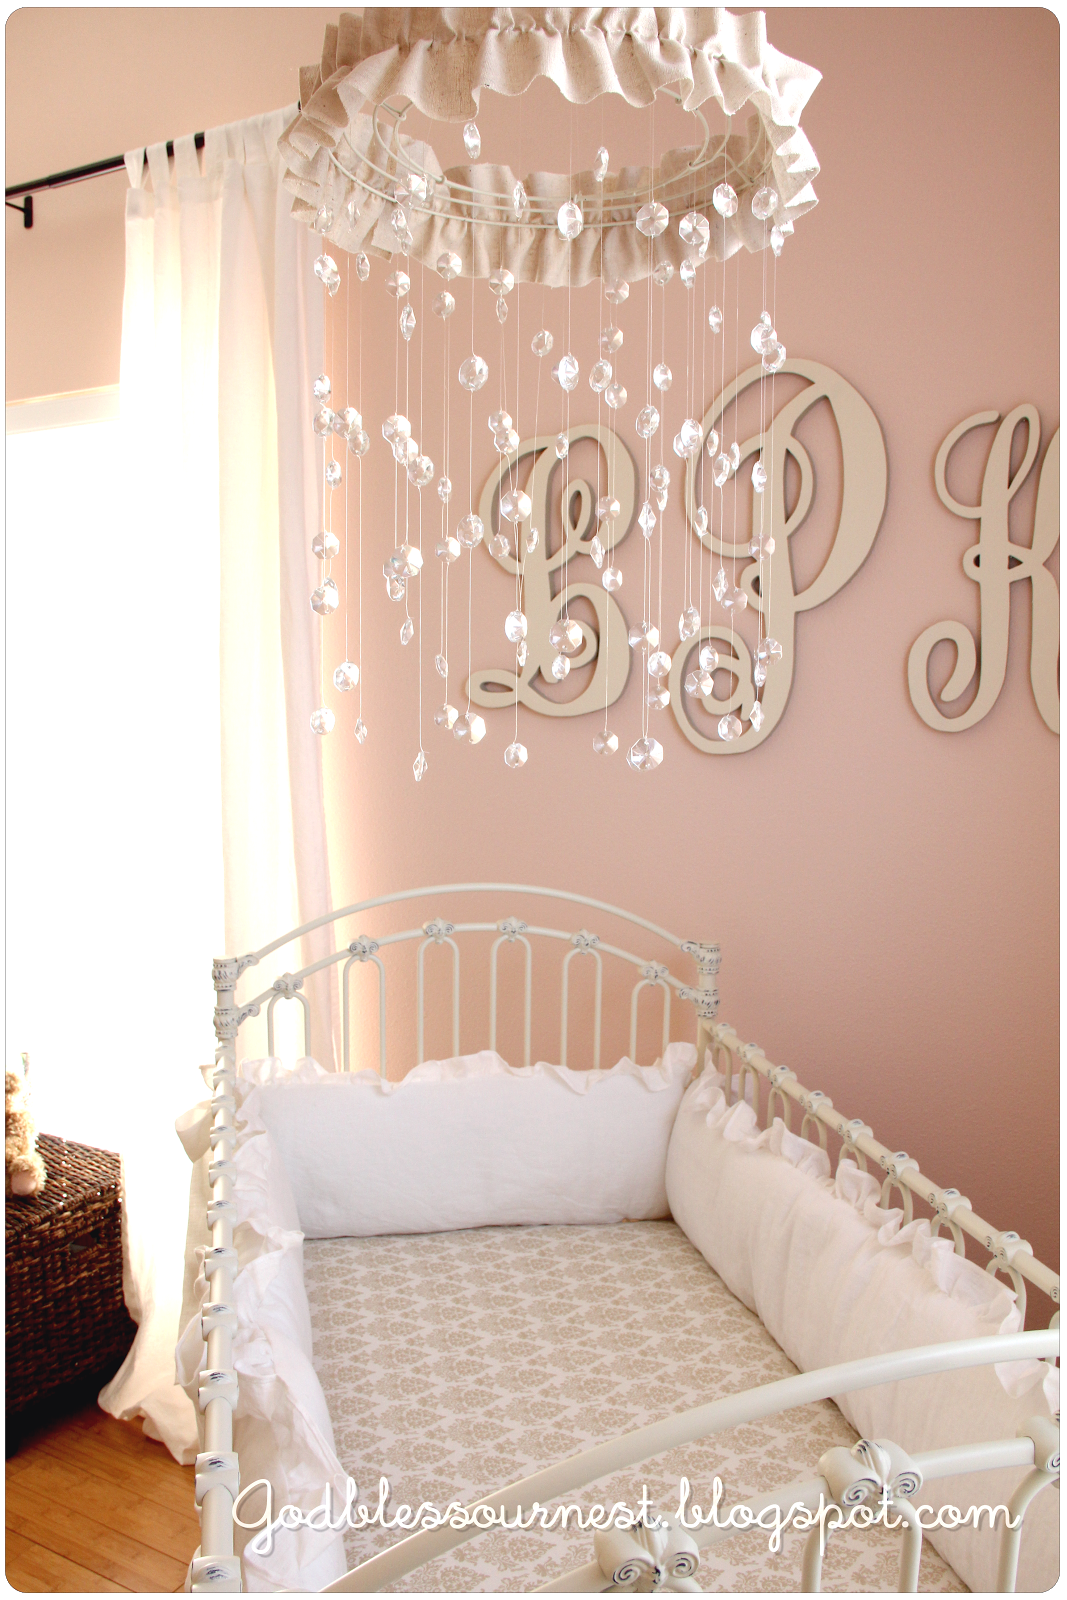 God bless {our} nest: DIY: Crystal Baby Mobile | Chantournage ...